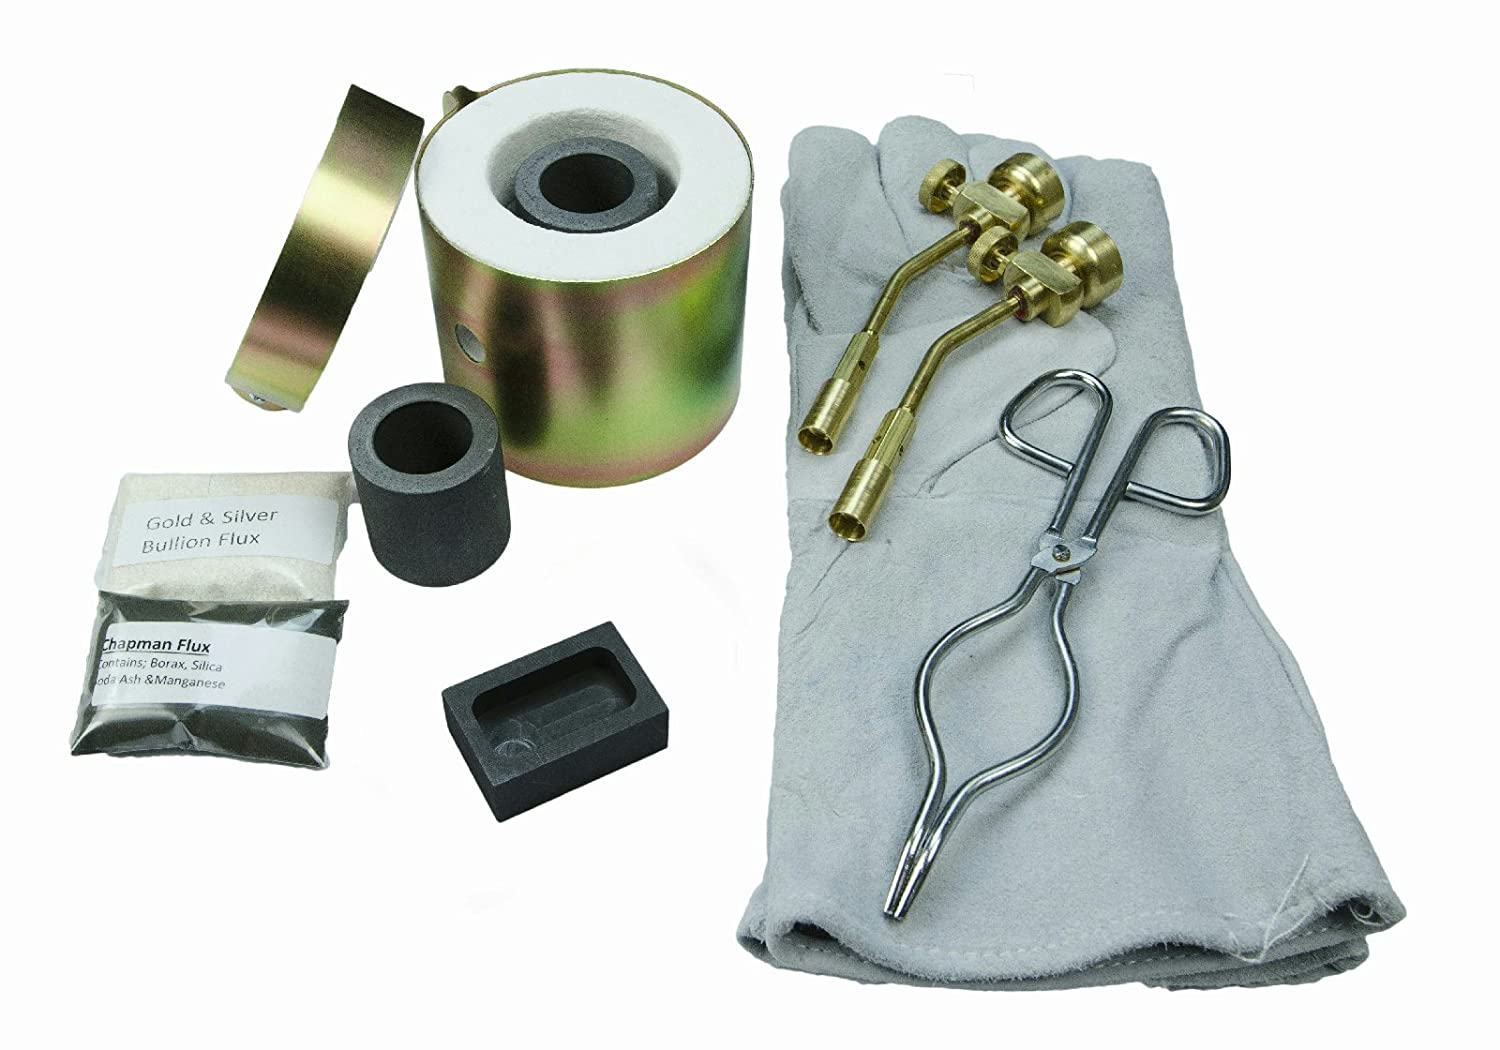 Mini Propane Gas Furnace Kit - Mold, Kiln, Flux, Tips, Gloves, Crucibles, Tongs FFC-8-Melts Gold / Silver in 10min The Fast Furnace Company